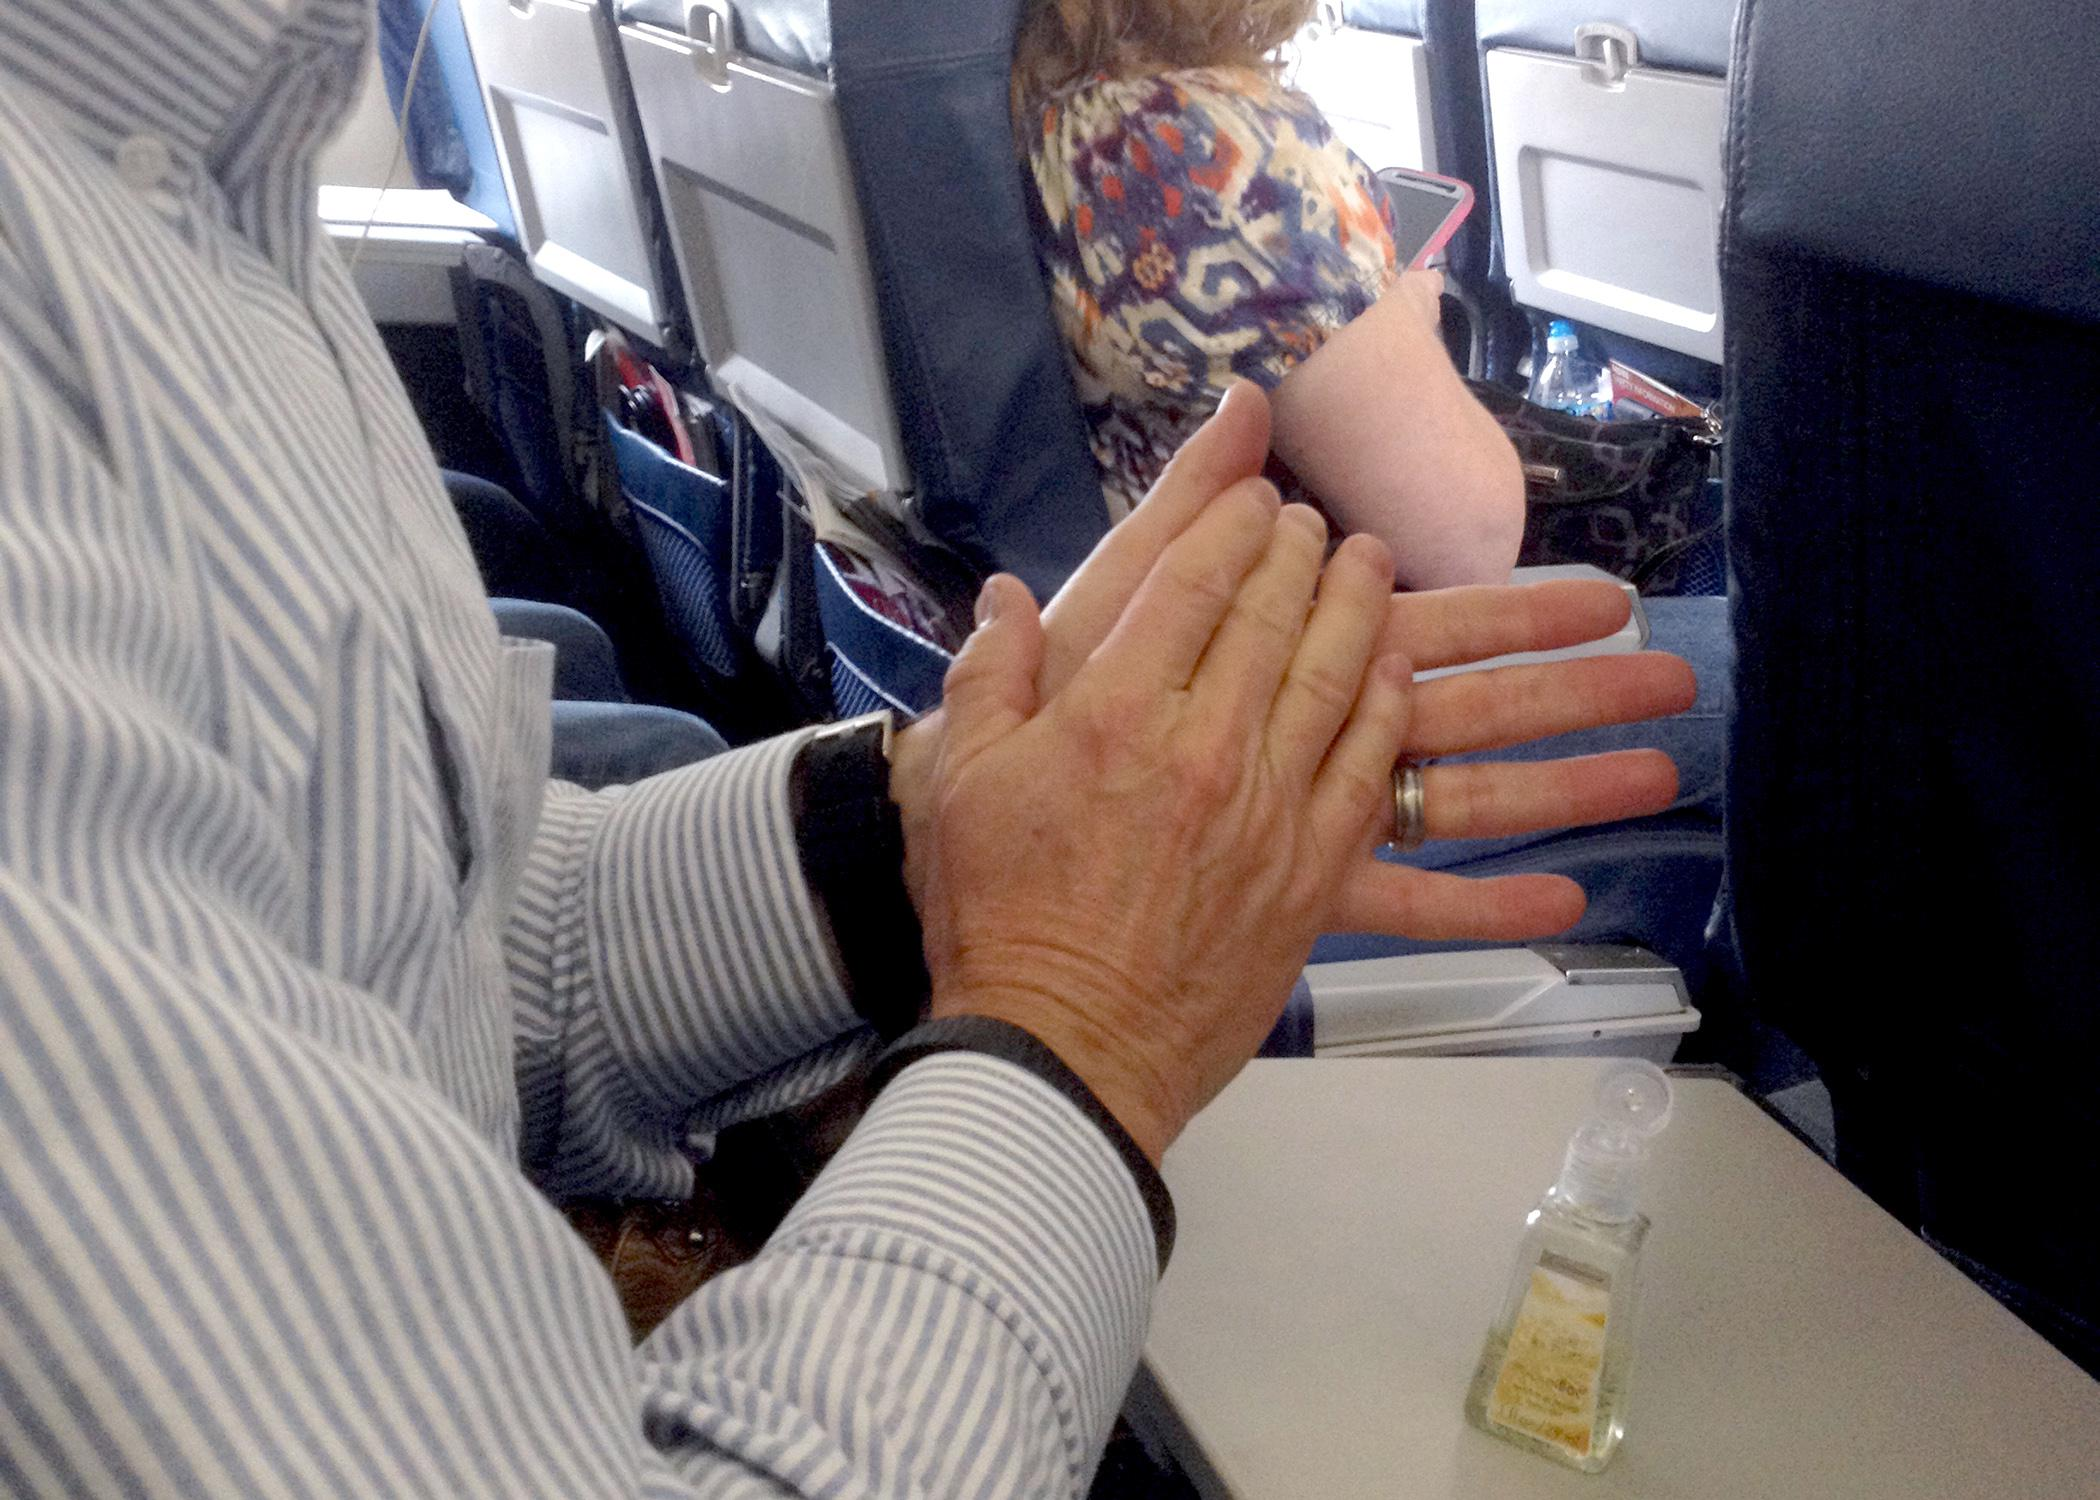 man washing hands with alcohol-based rub seated in airplane.